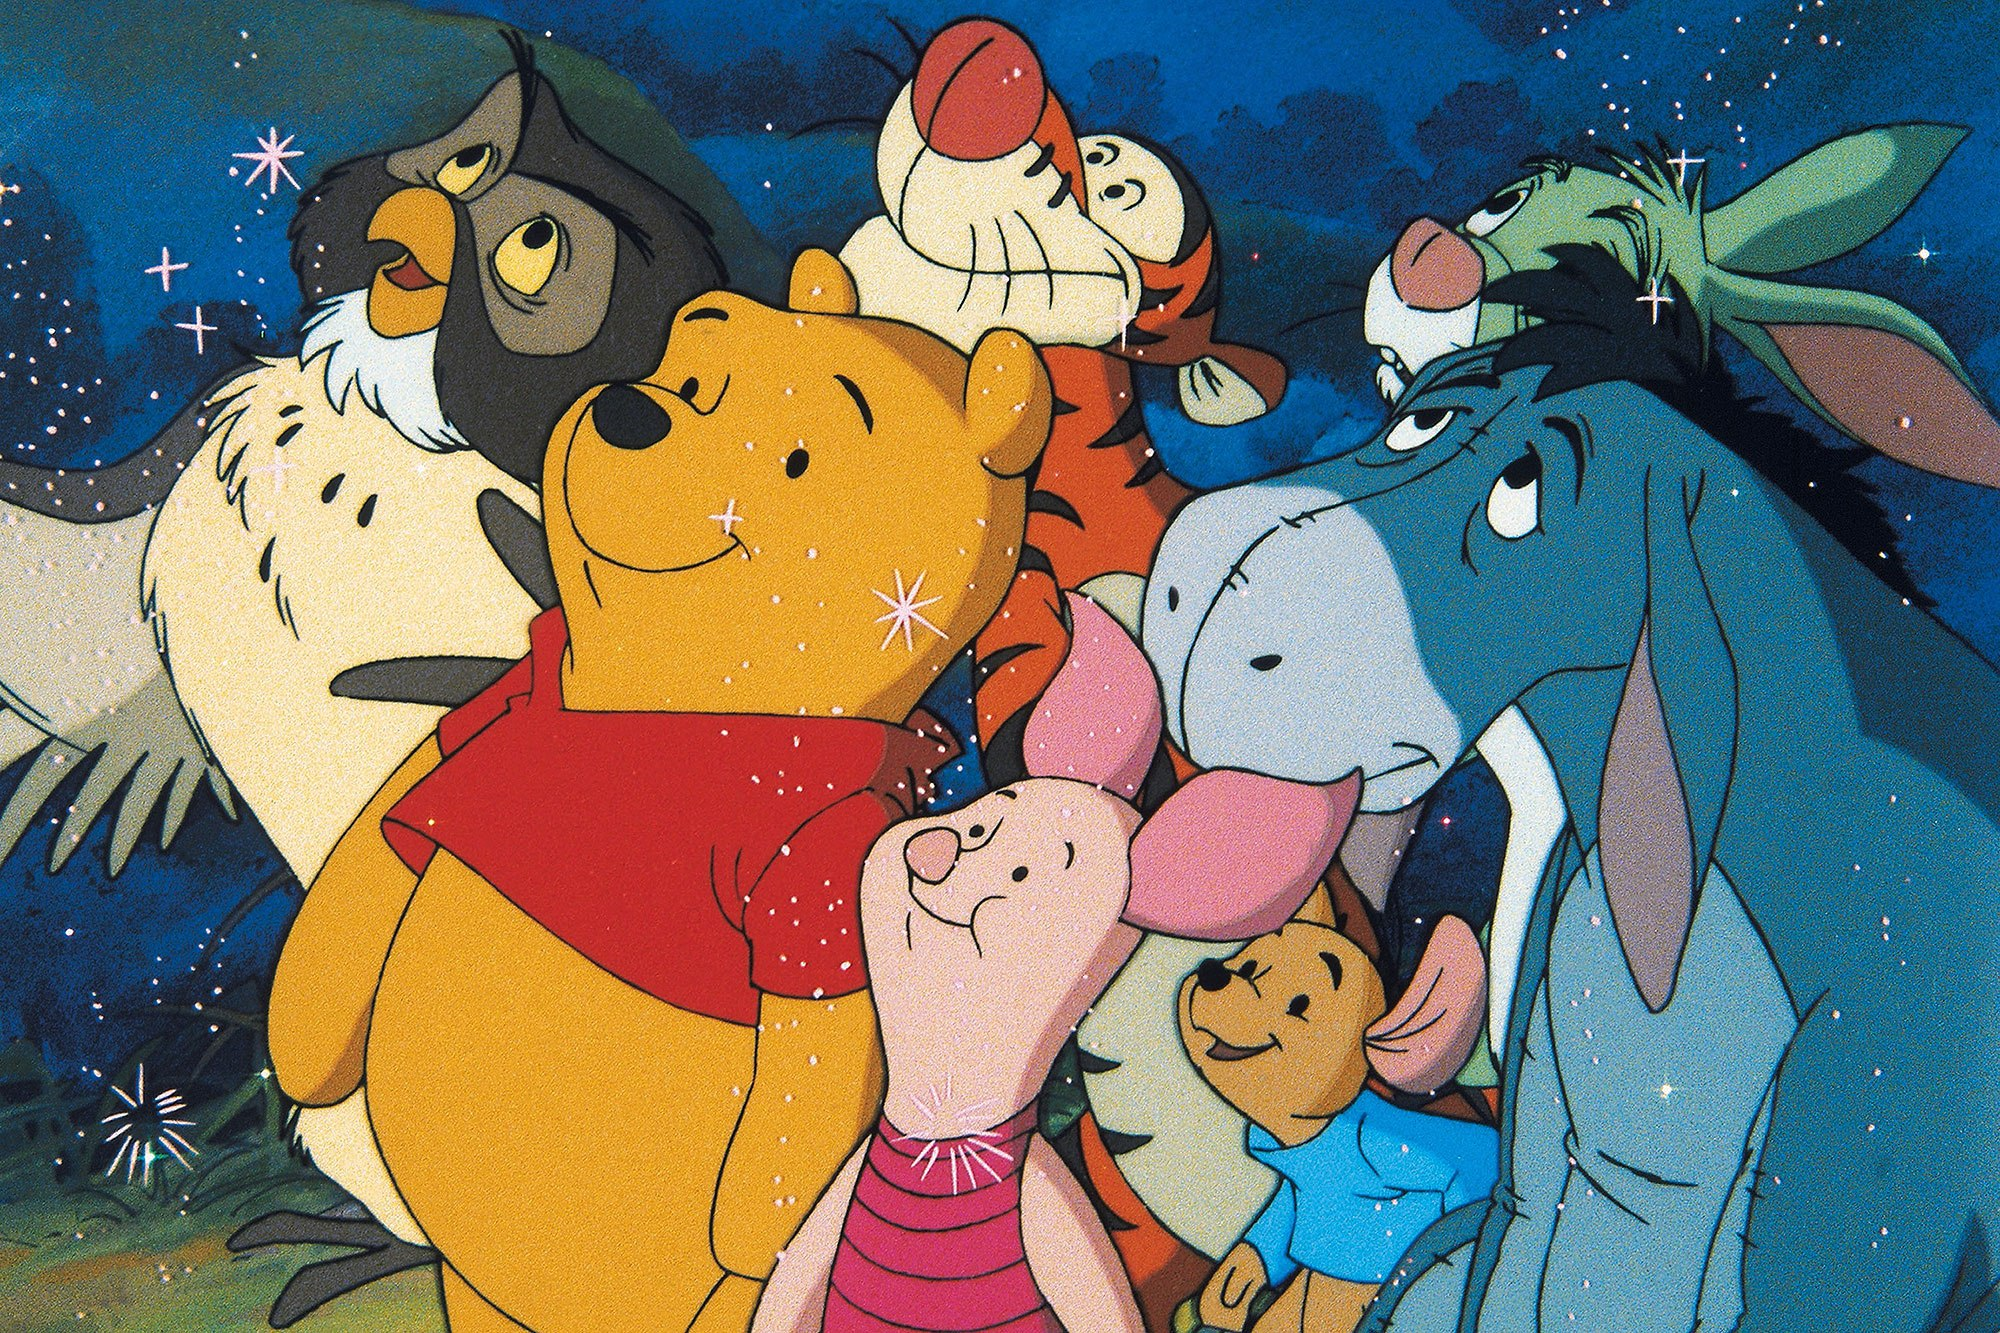 Winnie The Pooh Quotes About Life Best Quotes On Friendship From Winniethepooh  Southern Living